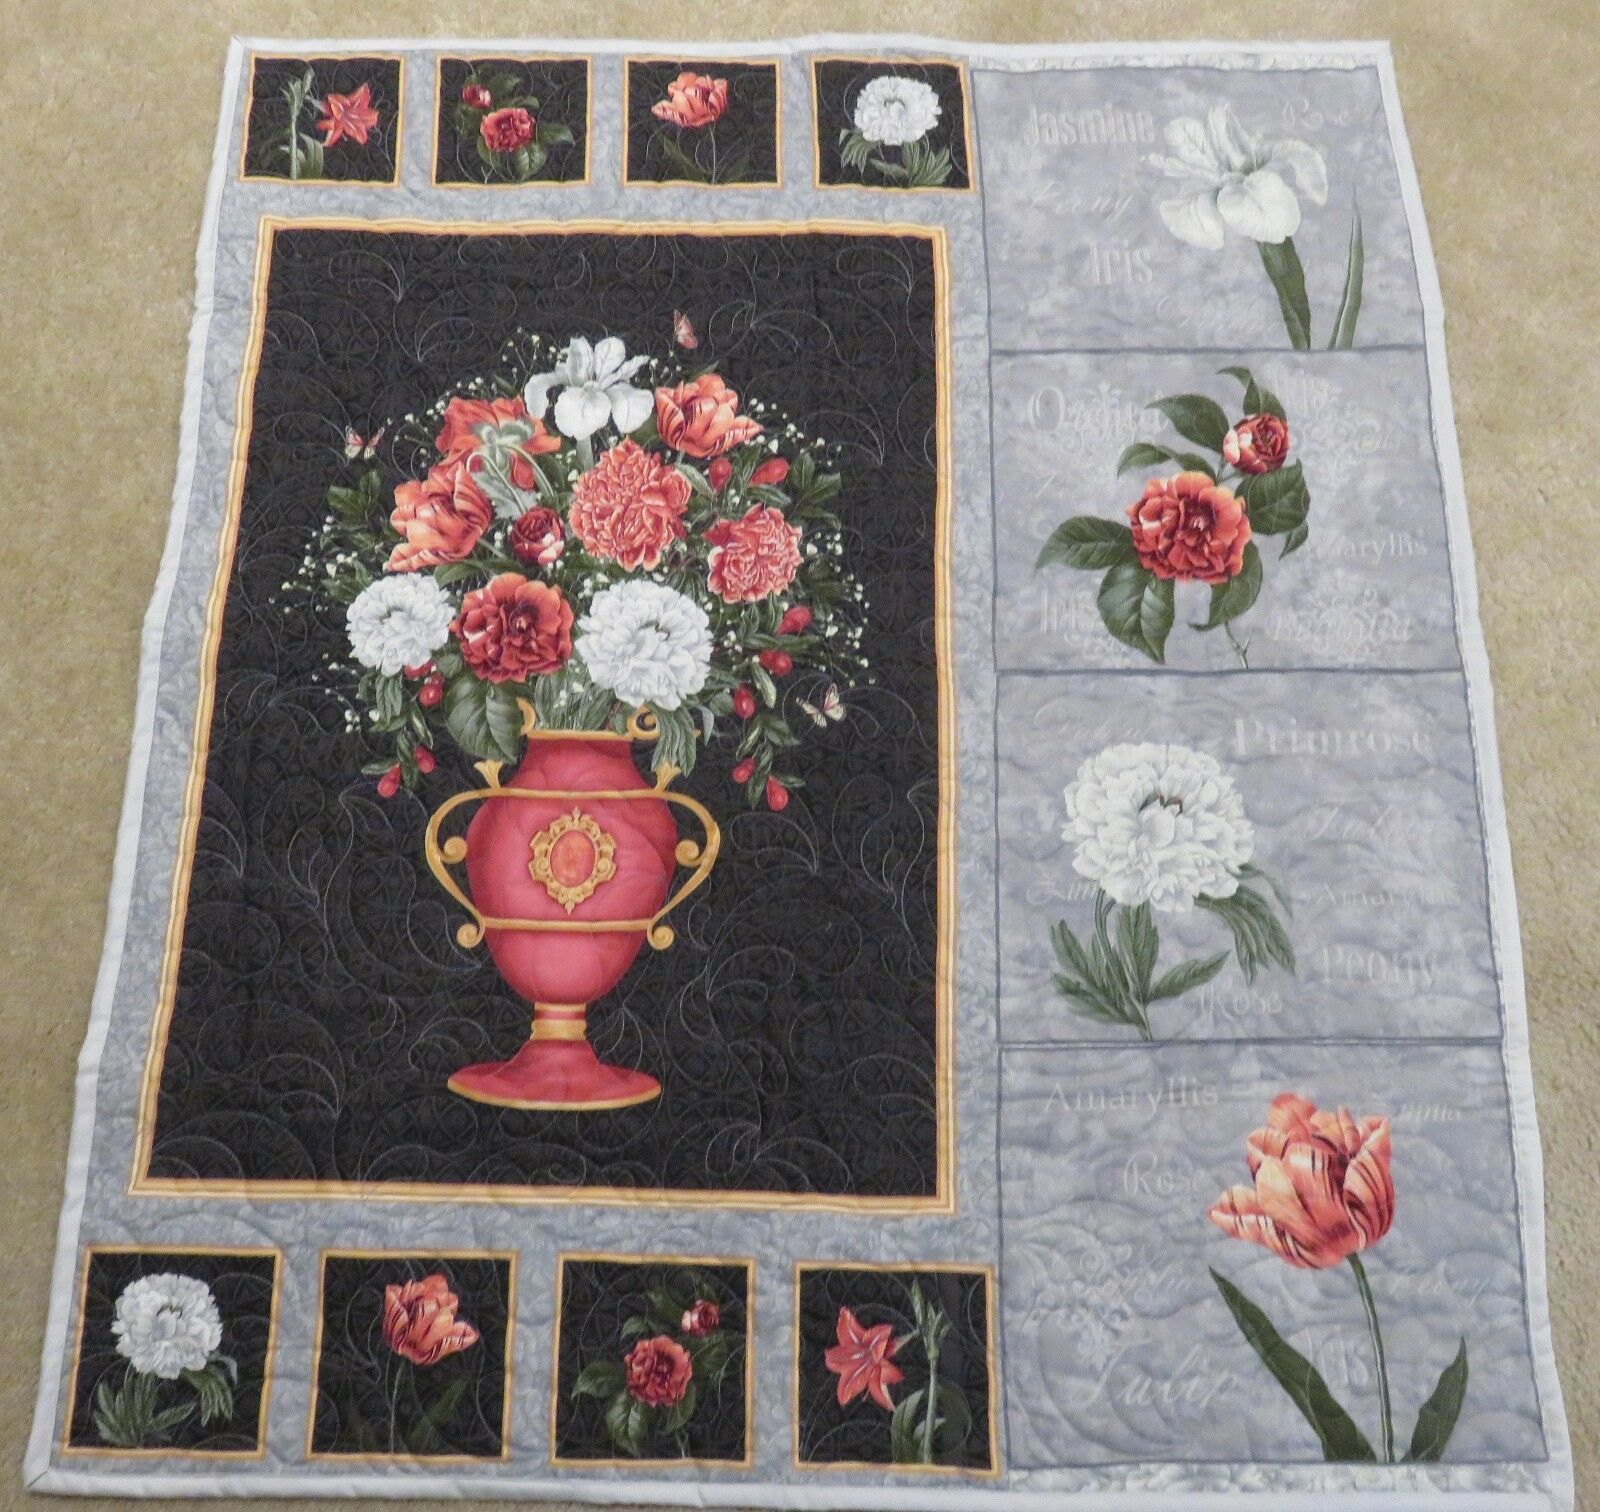 New USA Handmade Quilted Wallhanging- Floral Vase Botanical Prints 36 x 42